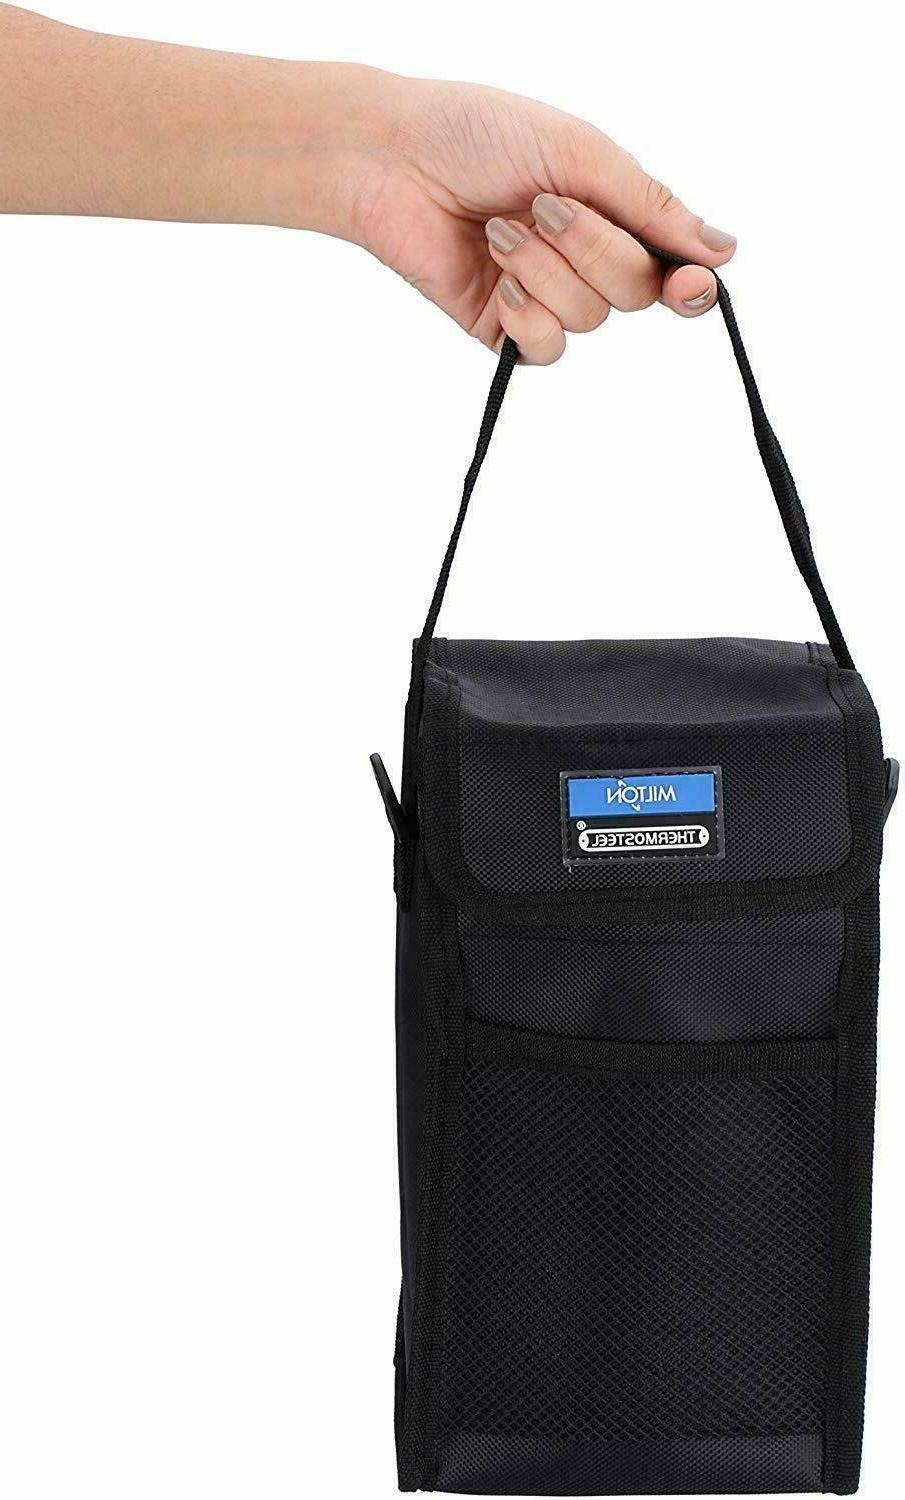 Milton Hot Lunch Box 4 Containers With Bag